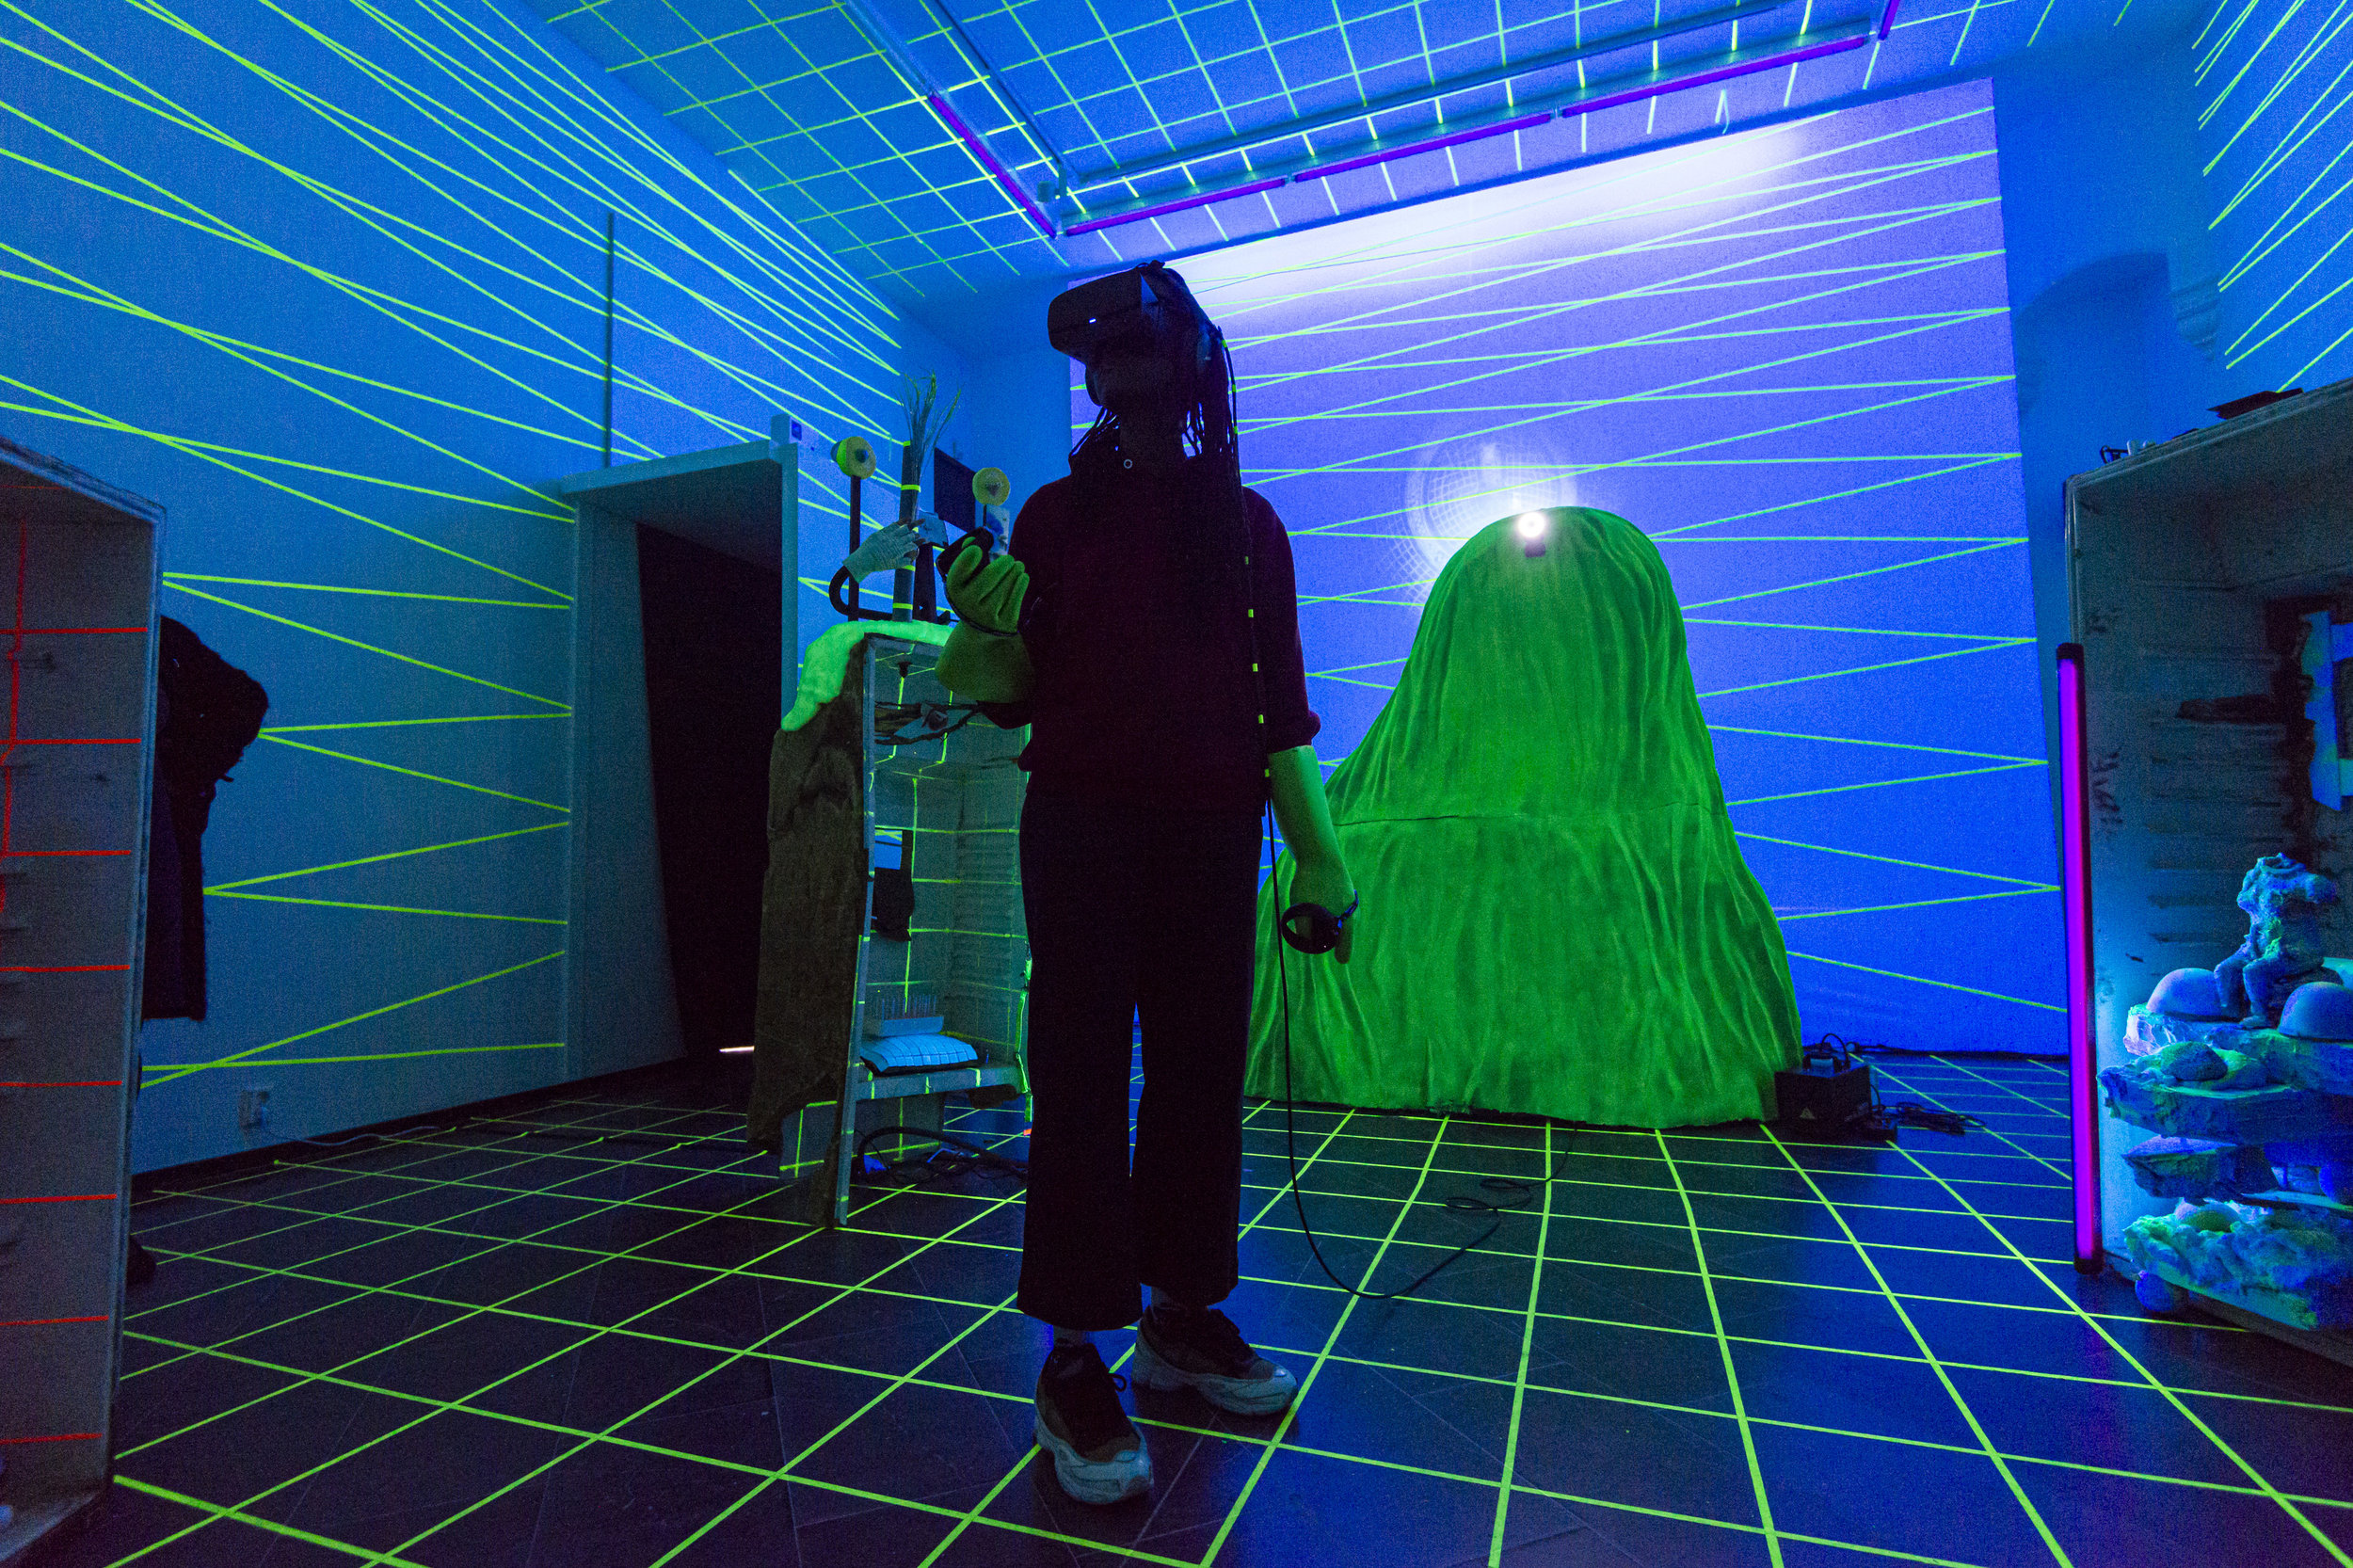 RITUAL MACHINE - The ritual machine takes you on a trip in virtual reality. The experience allows you to leave your human body behind, enter a digital space and access an alternate state of mind.